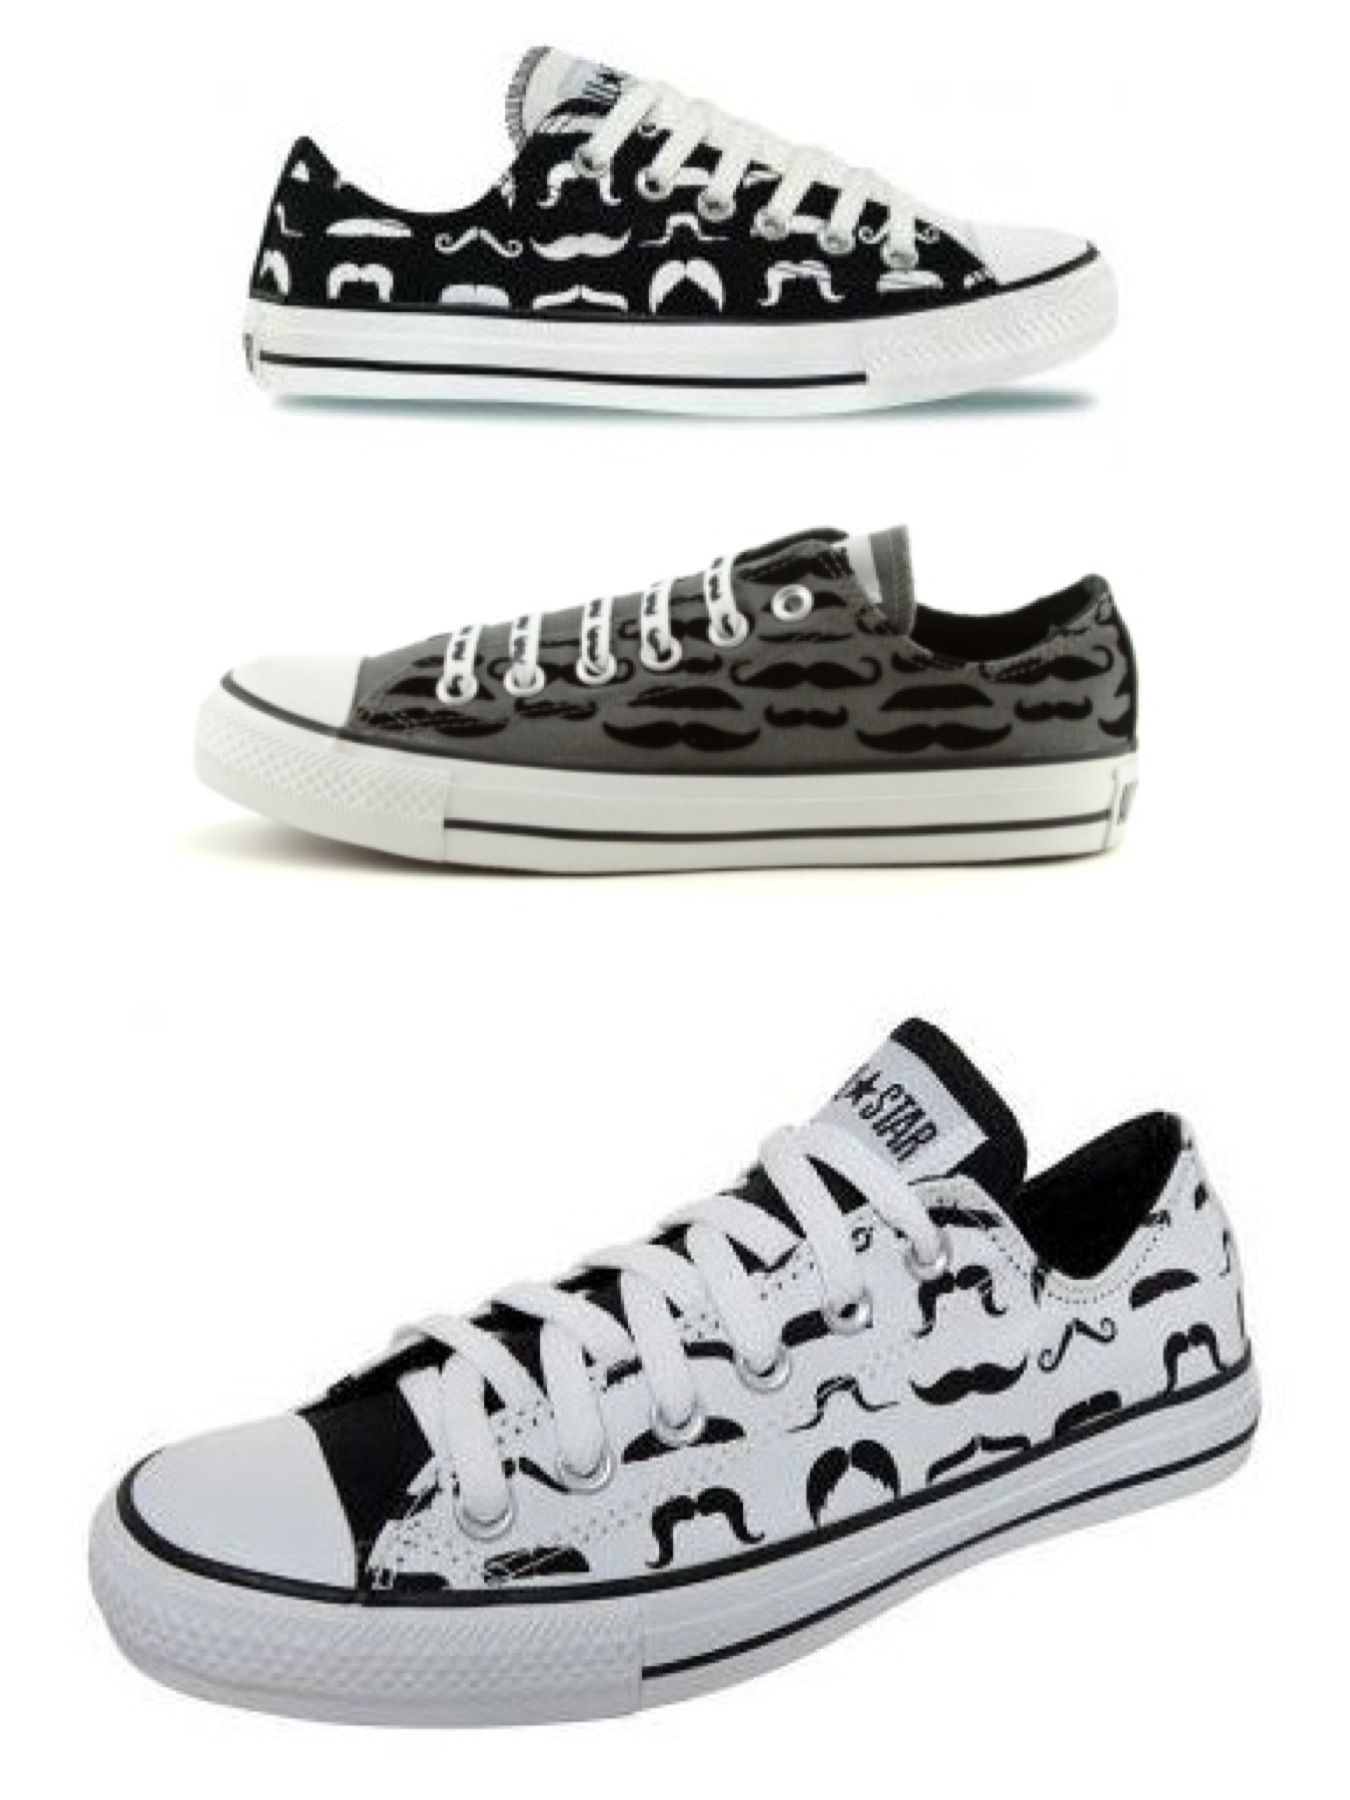 Classic Converse All Stars | Converse shoes, Converse, Nice